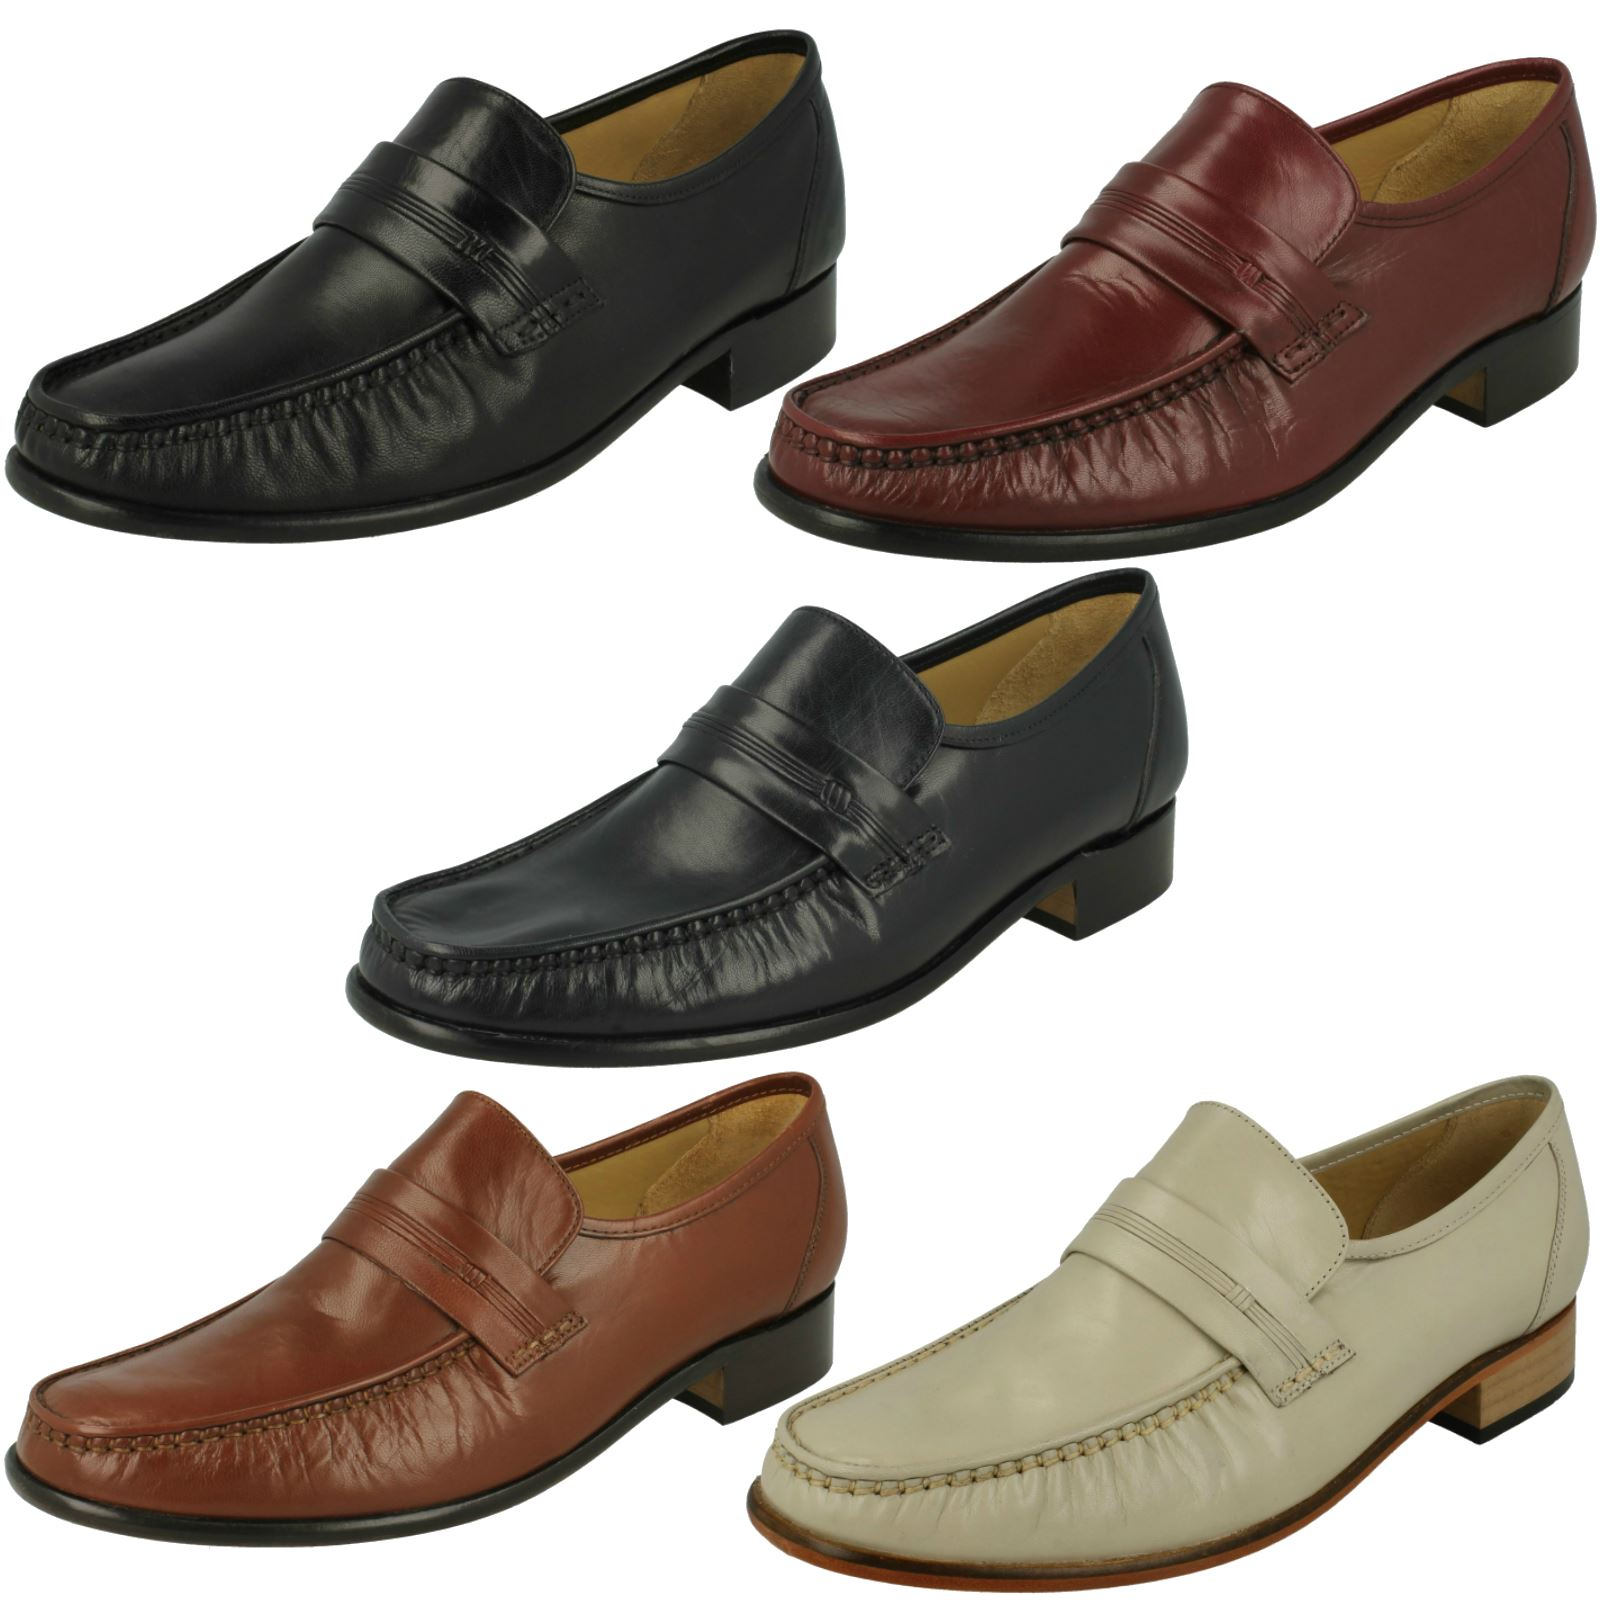 Details about Mens Thomas Blunt Moccasin Formal Shoes Clapham 2